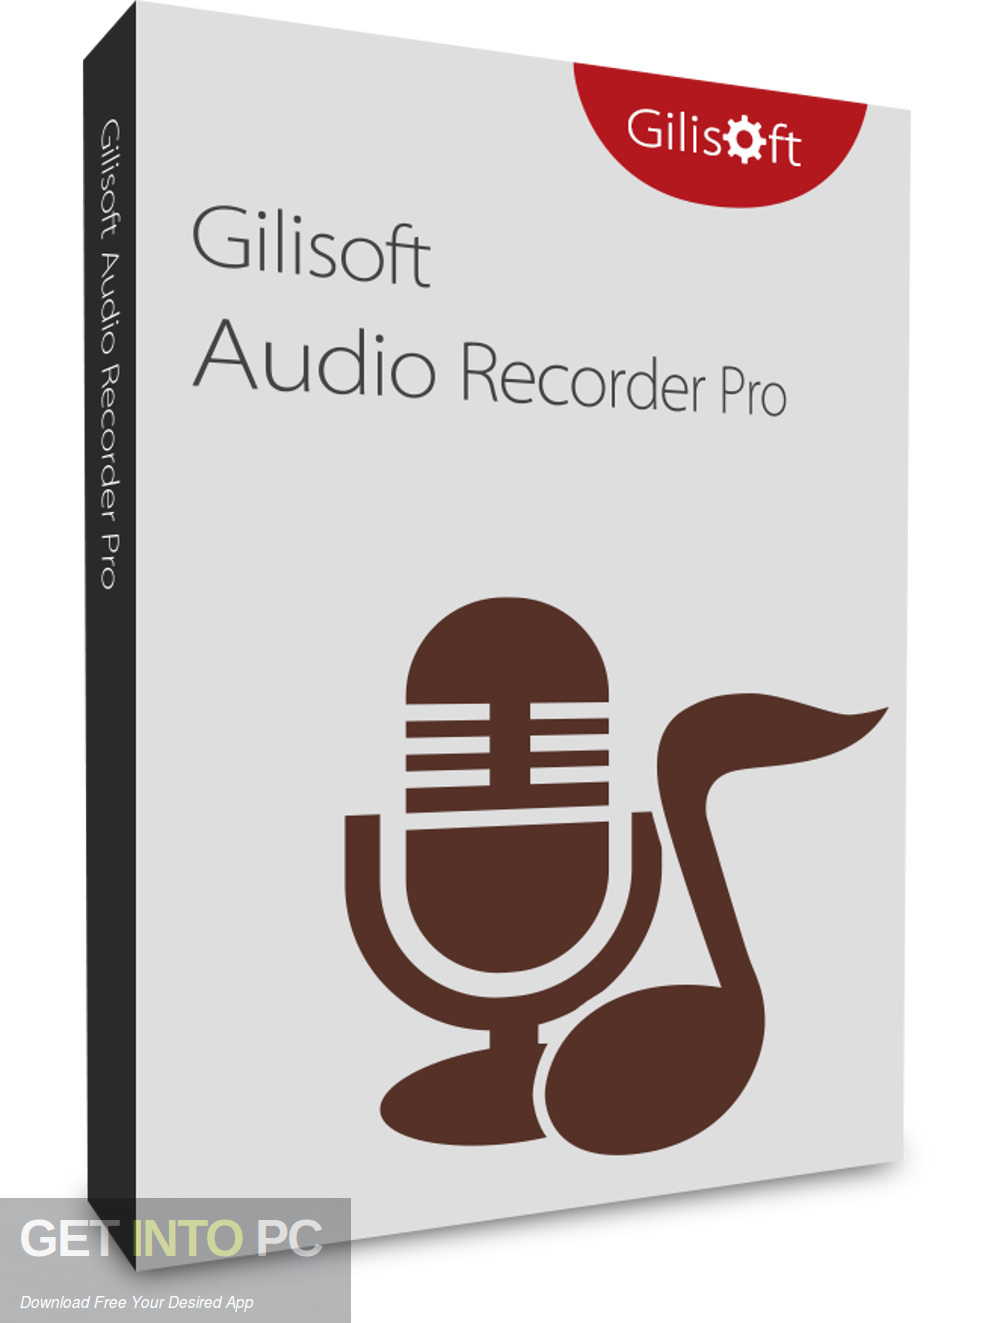 GiliSoft Audio Recorder Pro Free Download-GetintoPC.com